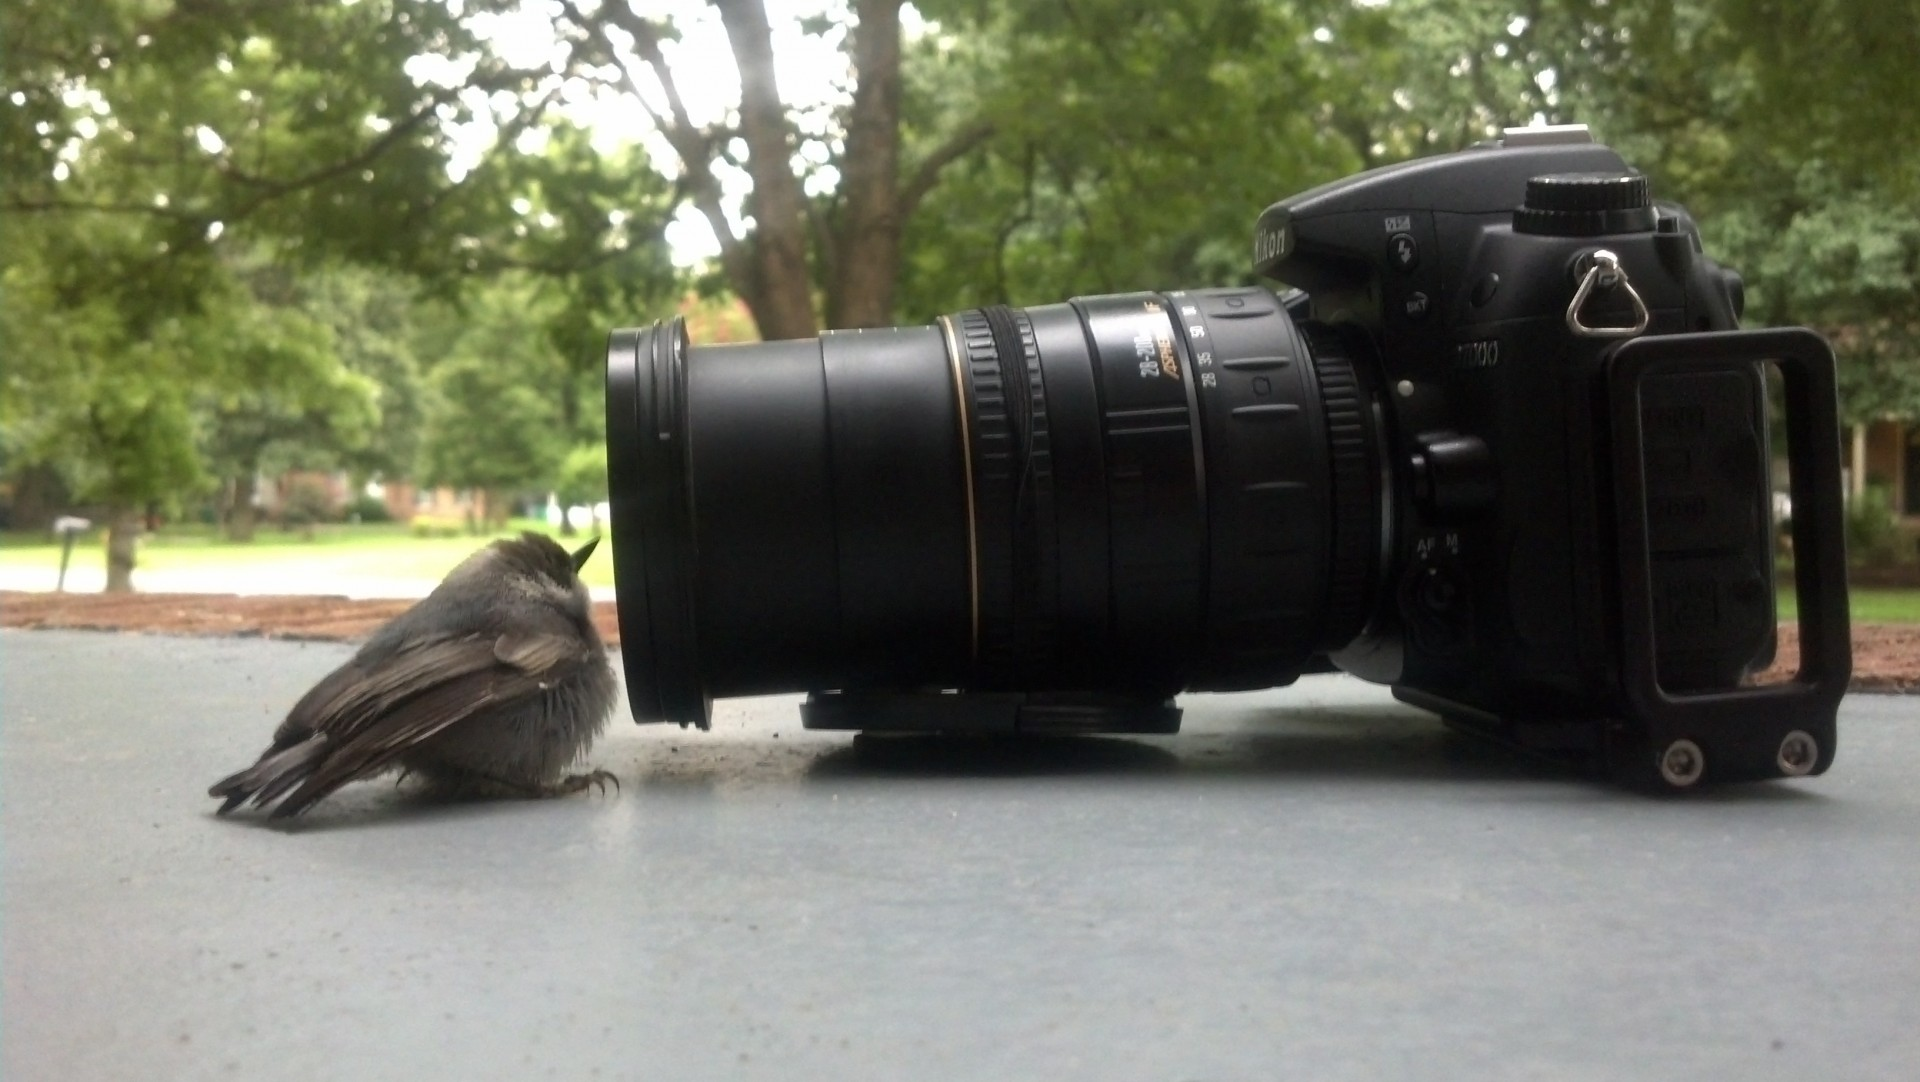 Bird Watching, Camera